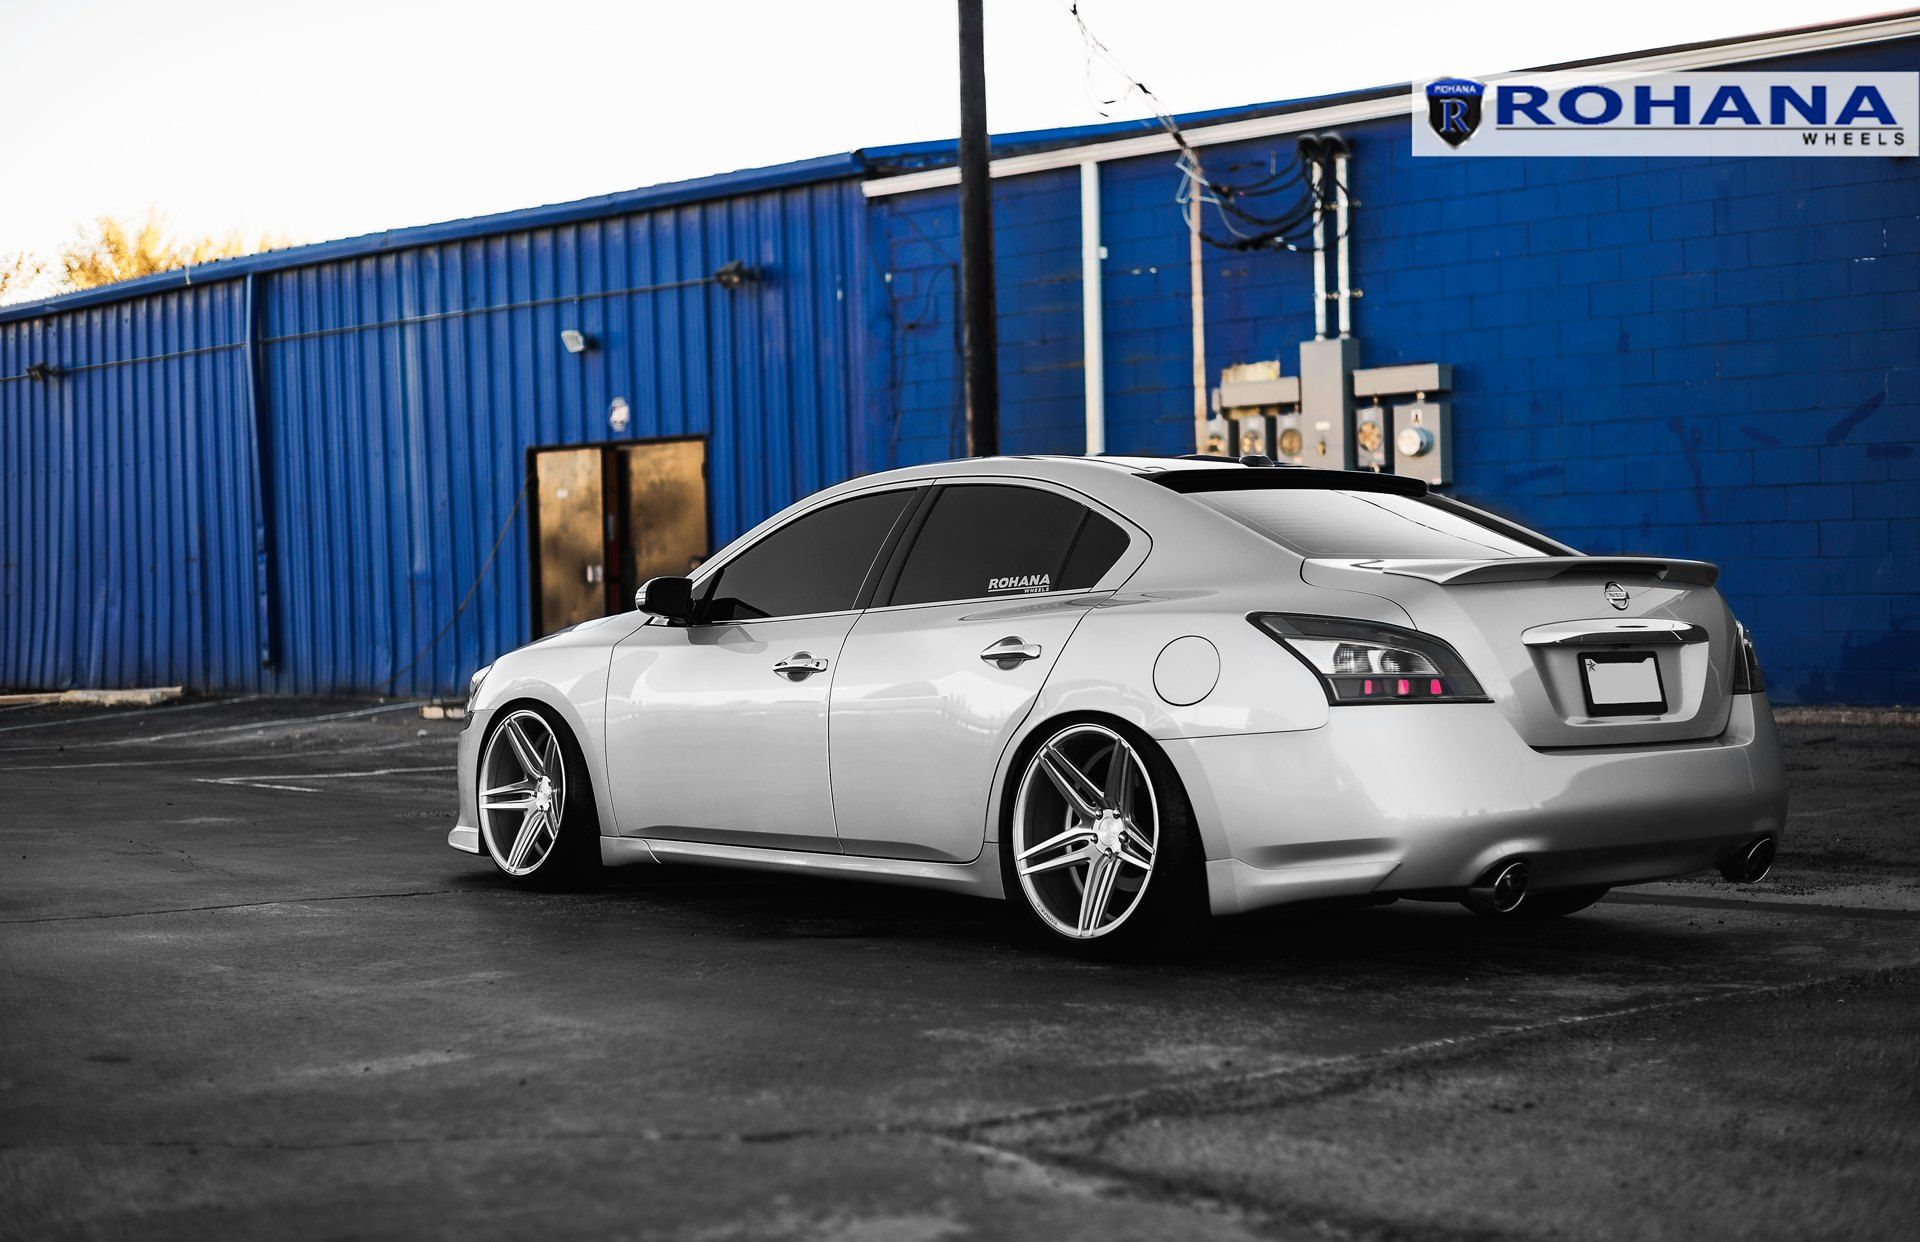 Stanced Nissan Maxima On Rohana Rc 8 Custom Wheels Nissan Maxima Custom Wheels Nissan